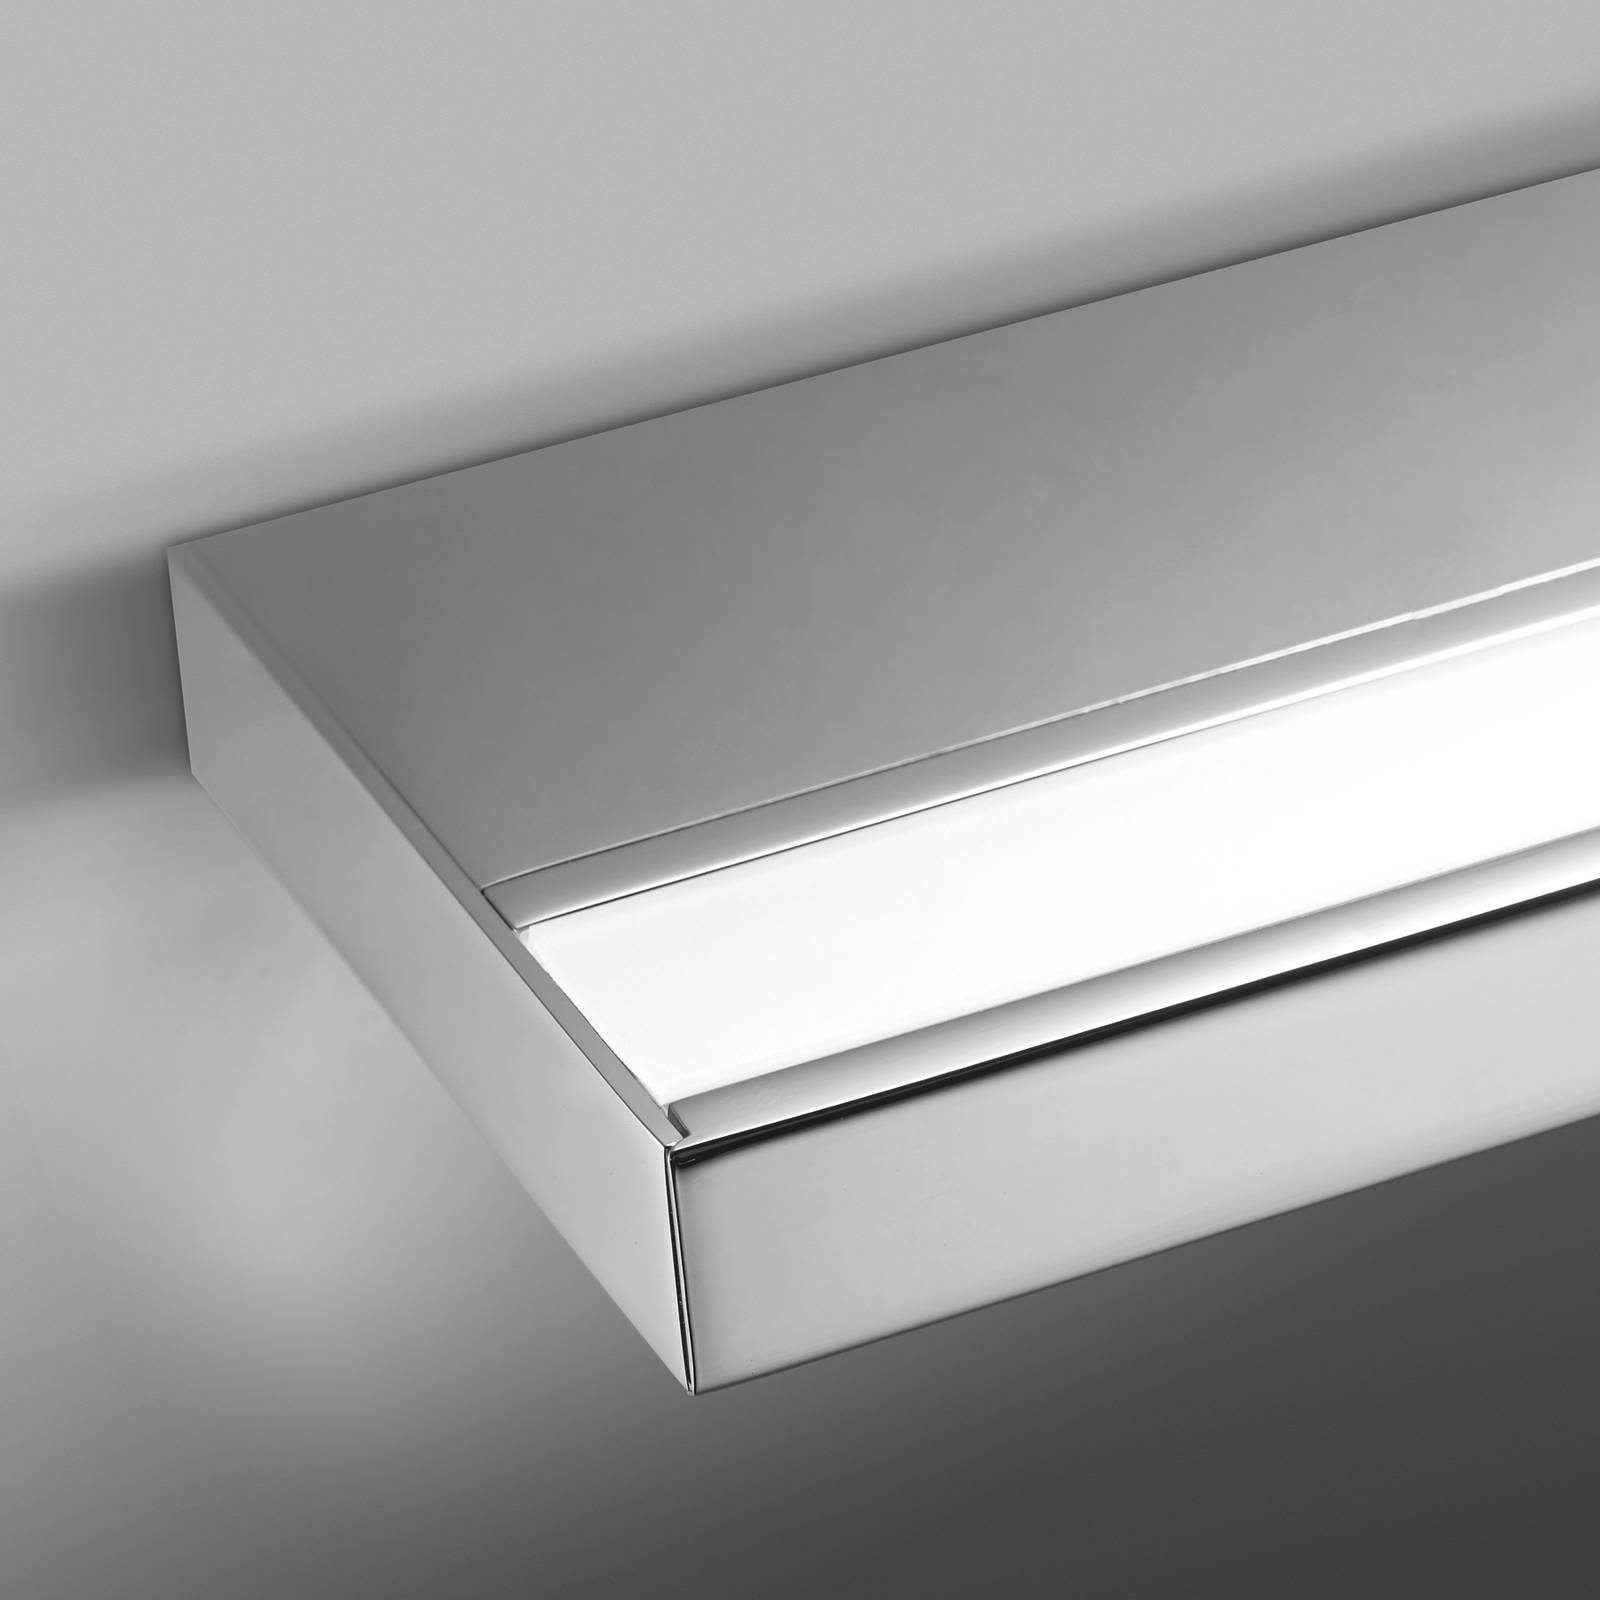 LED bathroom wall light Prim, IP20, 120 cm, chrome from Pujol